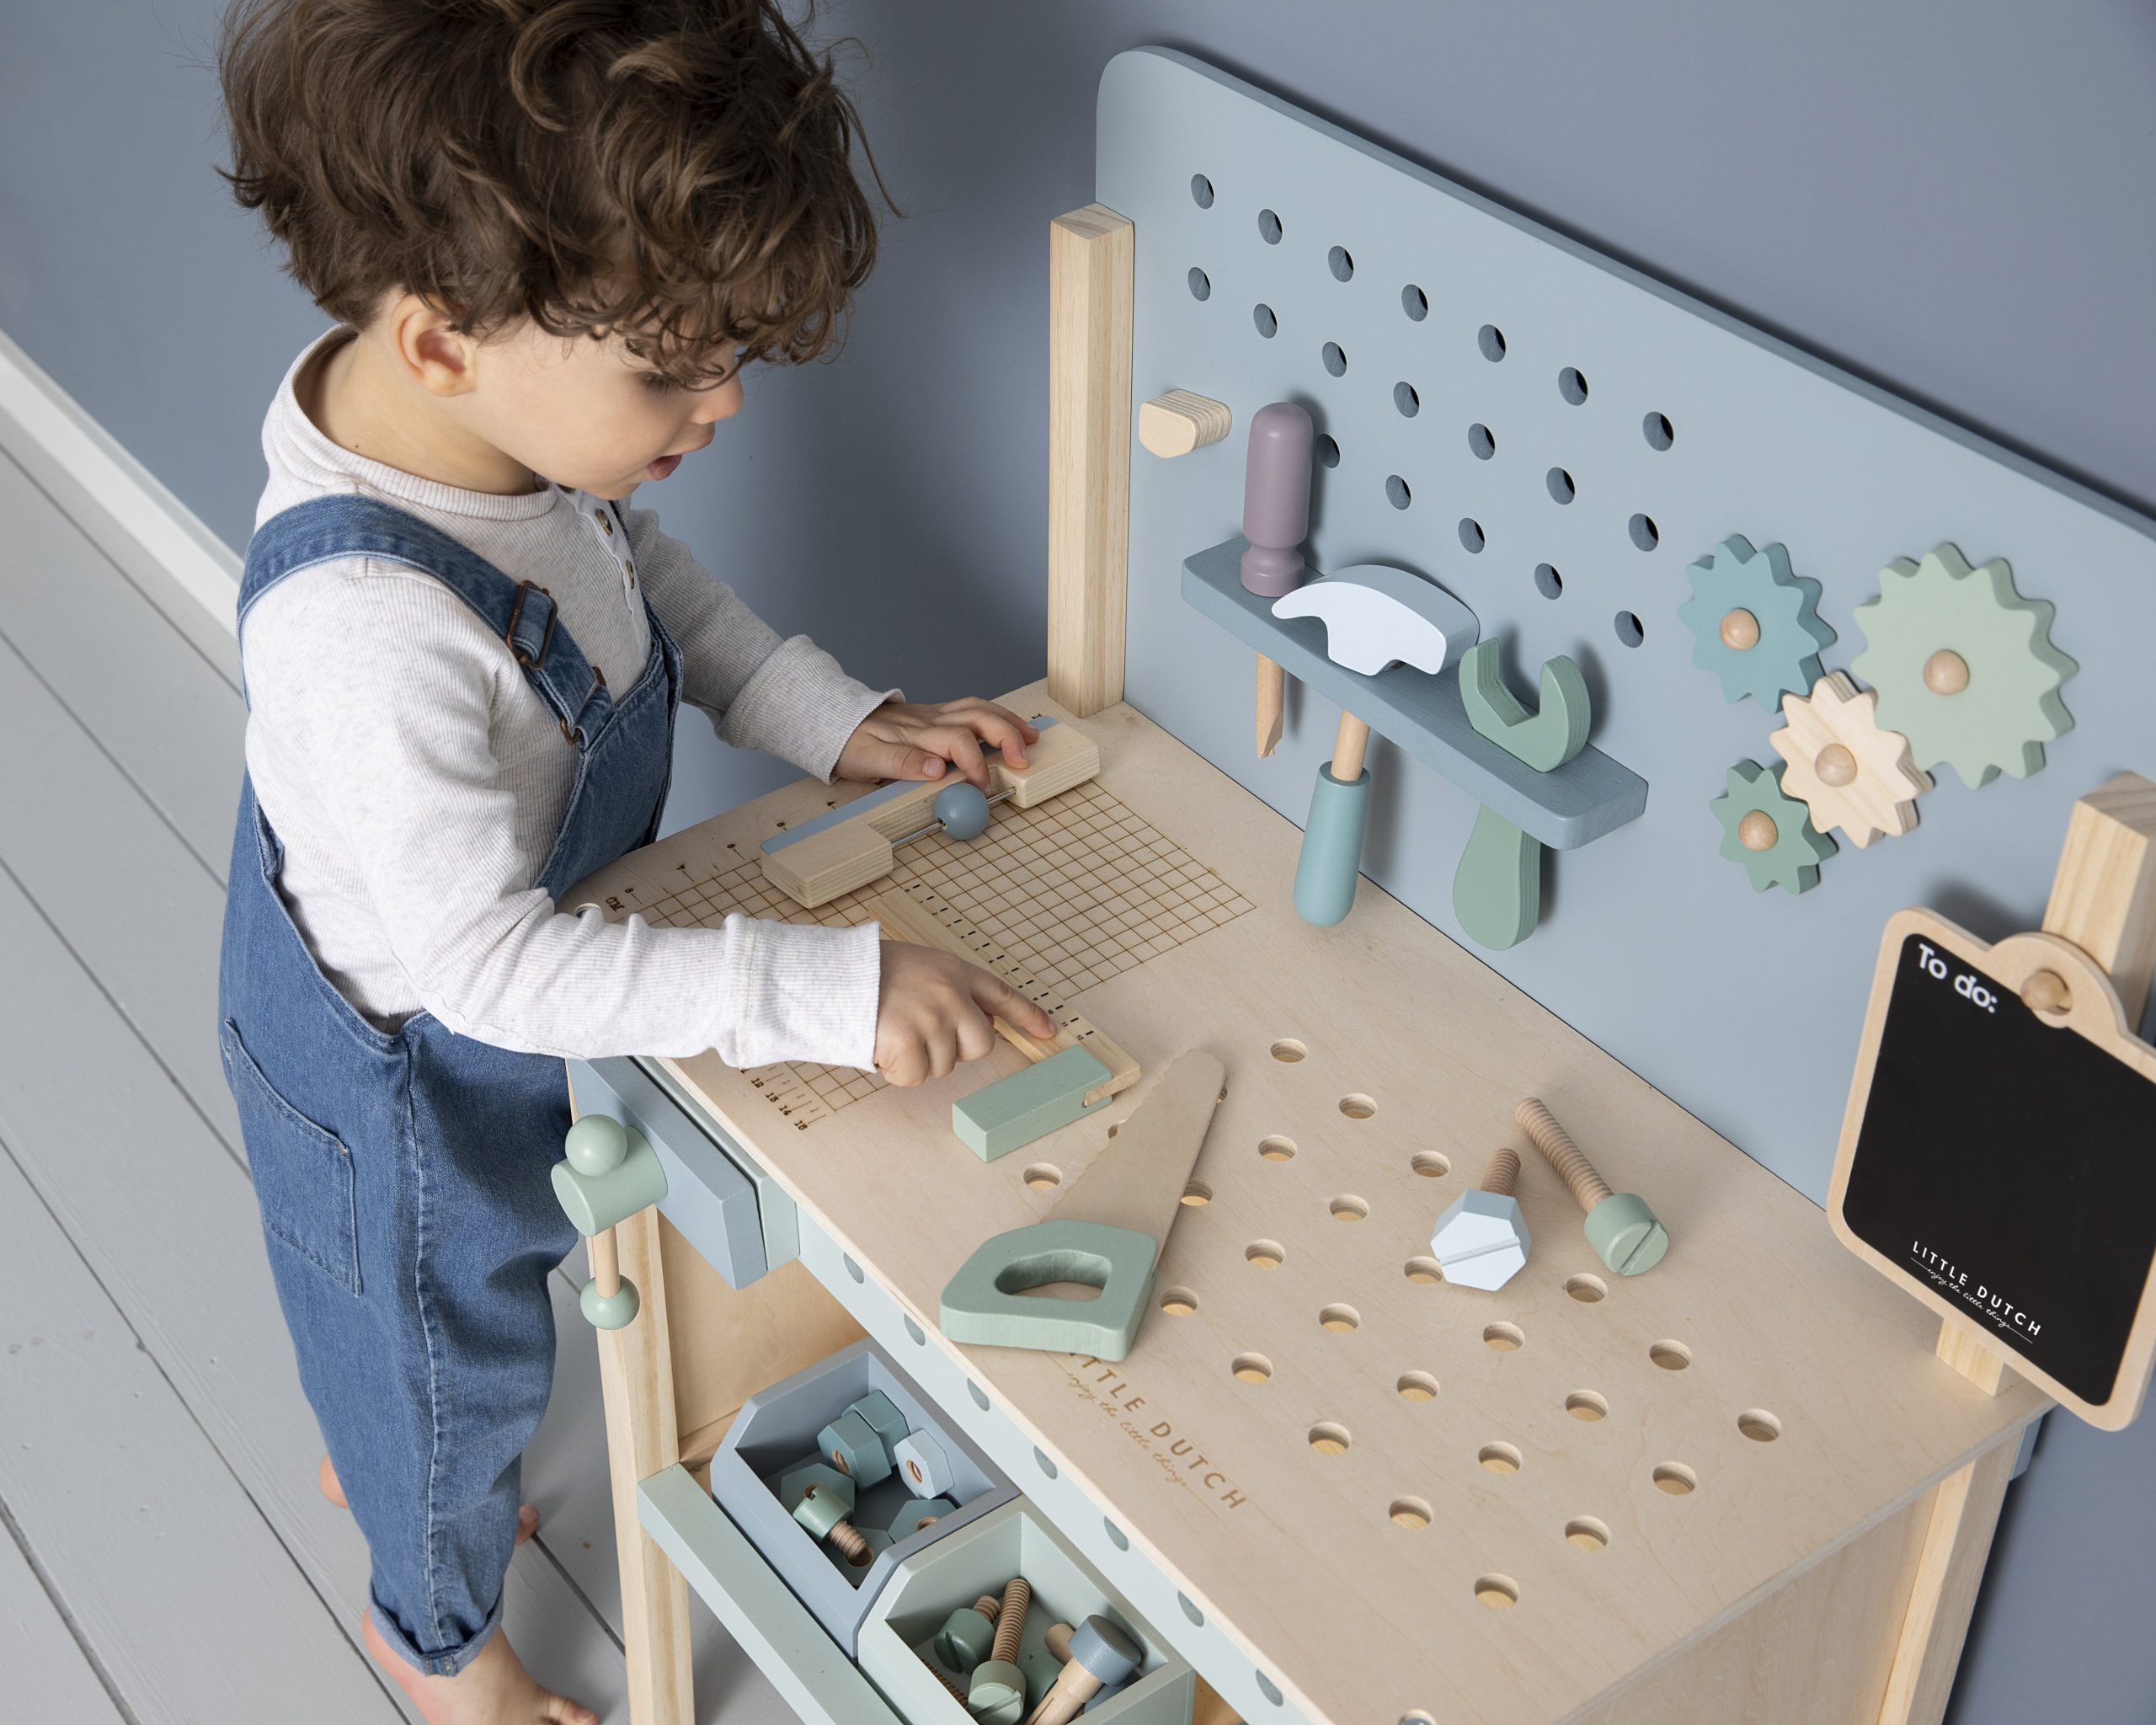 4448-wooden-play-workbench-16